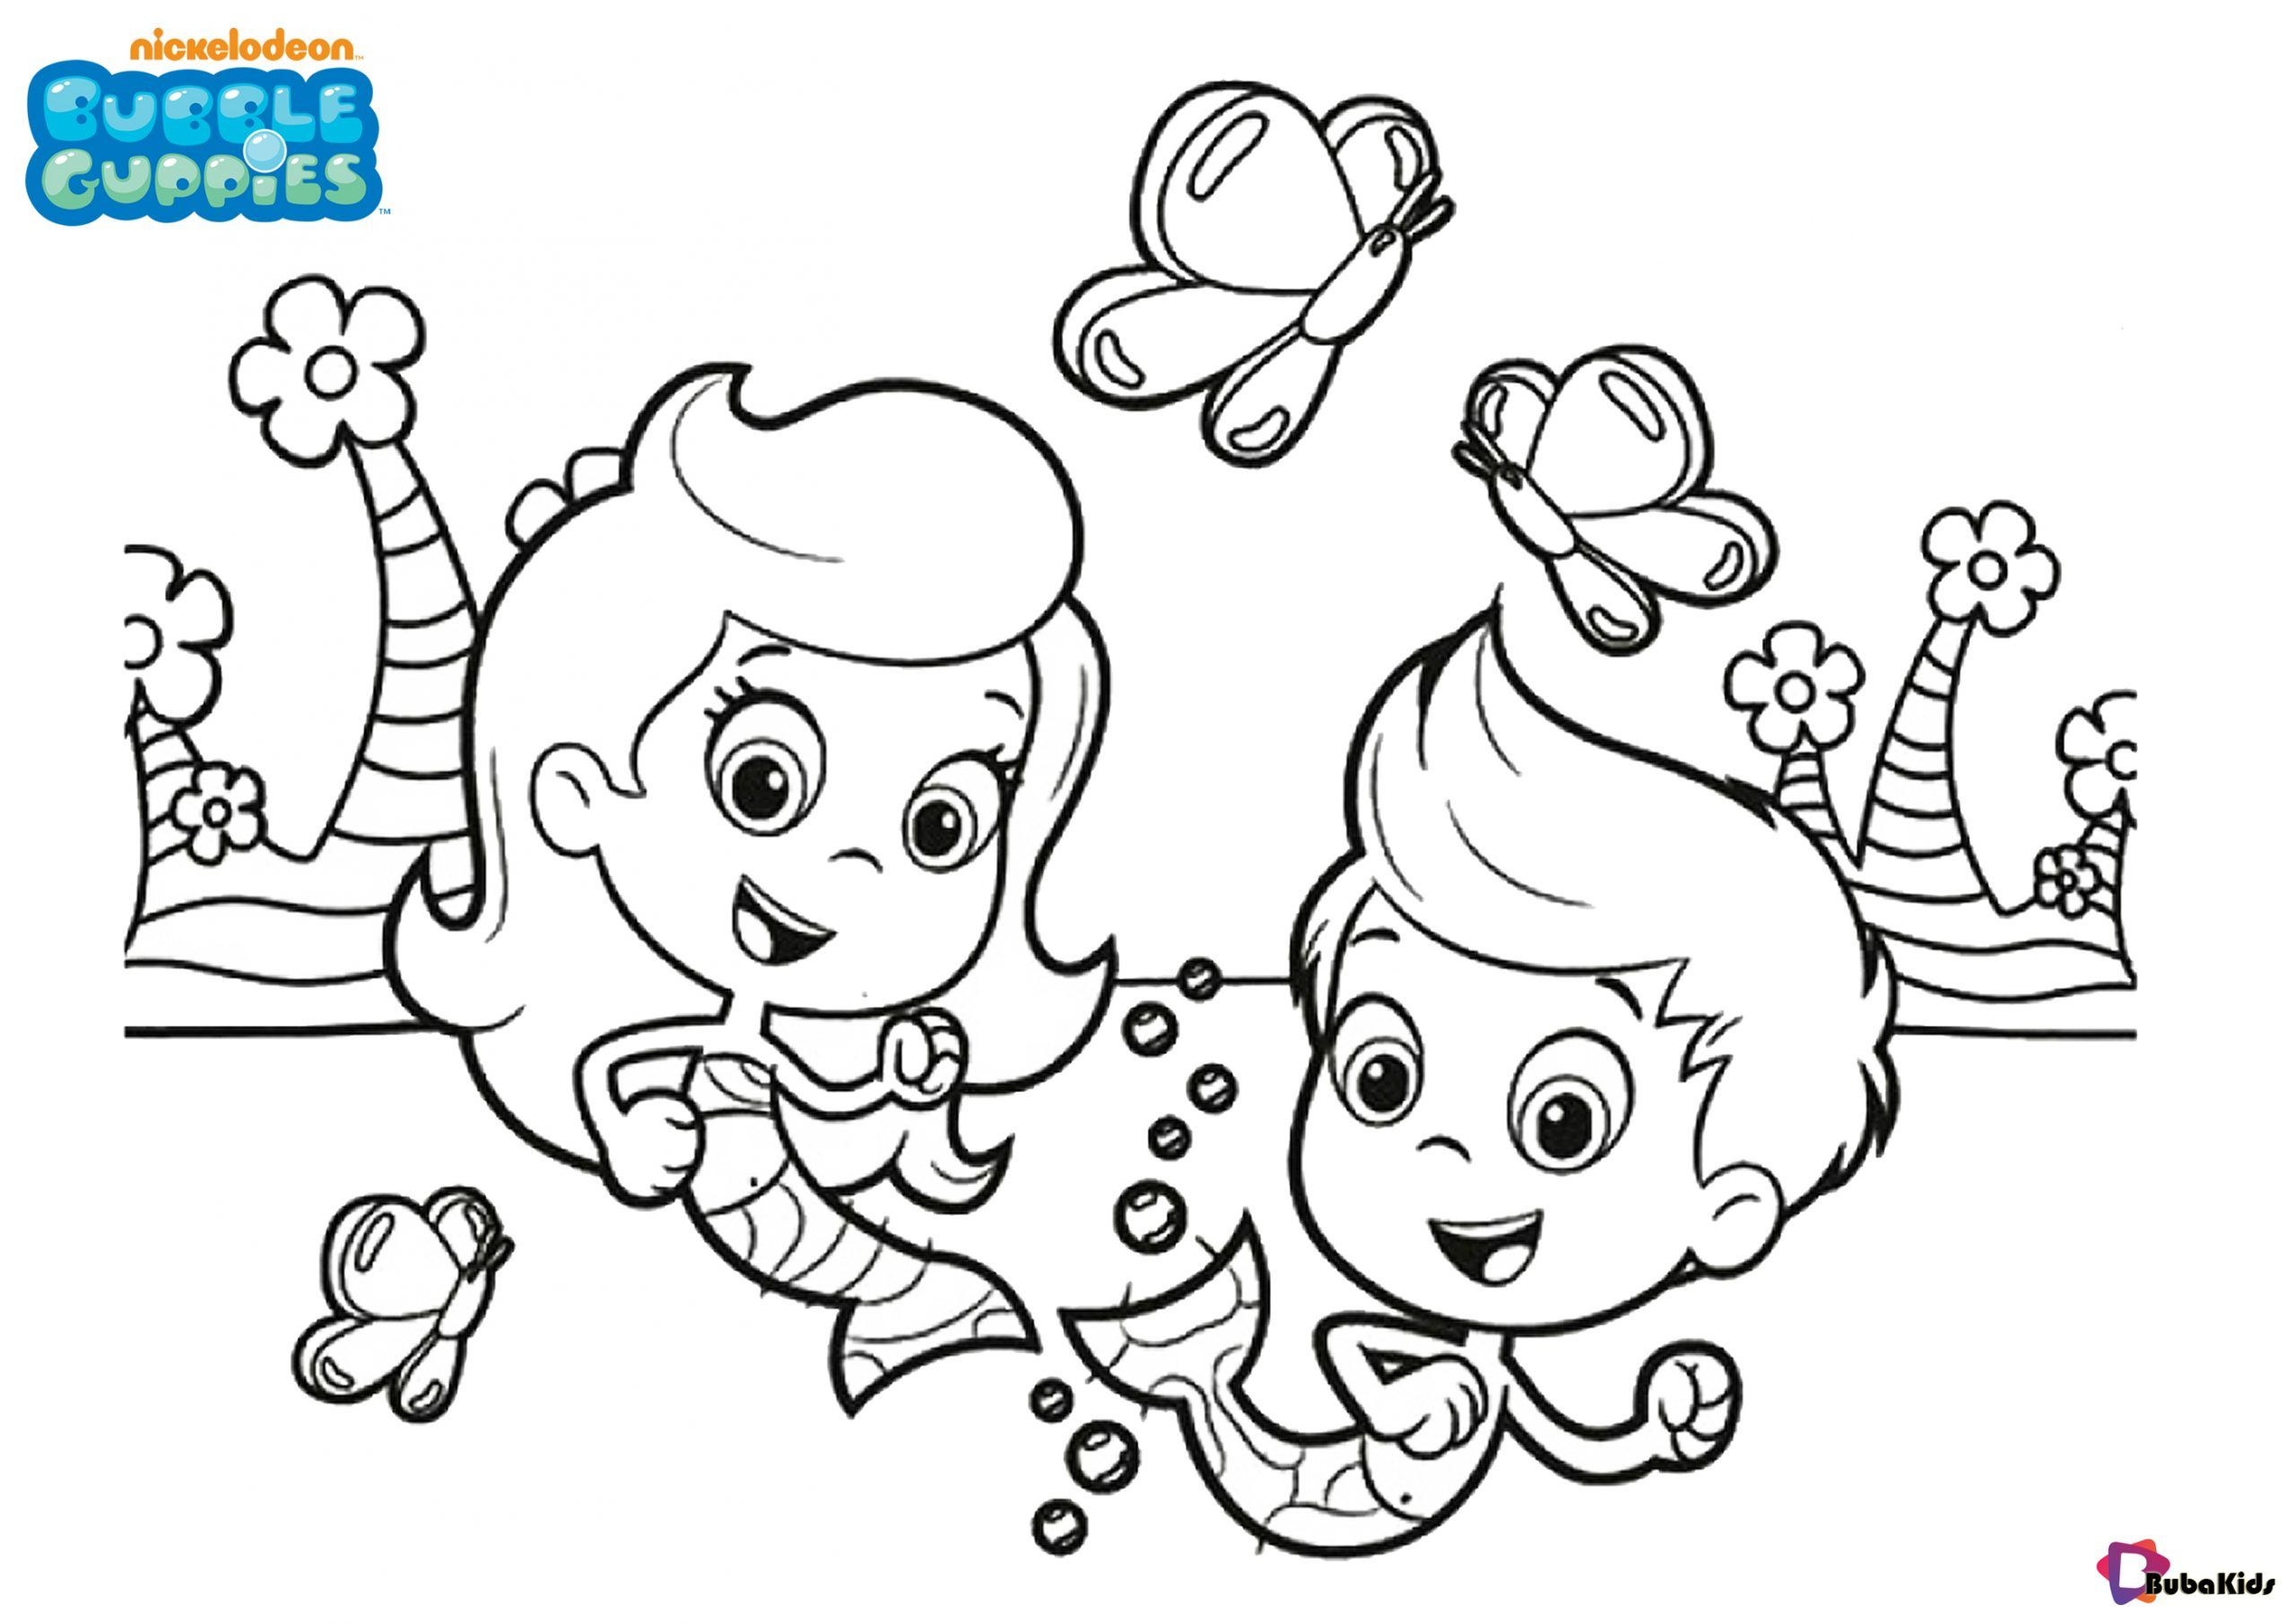 Easy And Printable Bubble Guppies Colouring Pages For Kids Collection Of Cartoon Col Bubble Guppies Coloring Pages Puppy Coloring Pages Cartoon Coloring Pages